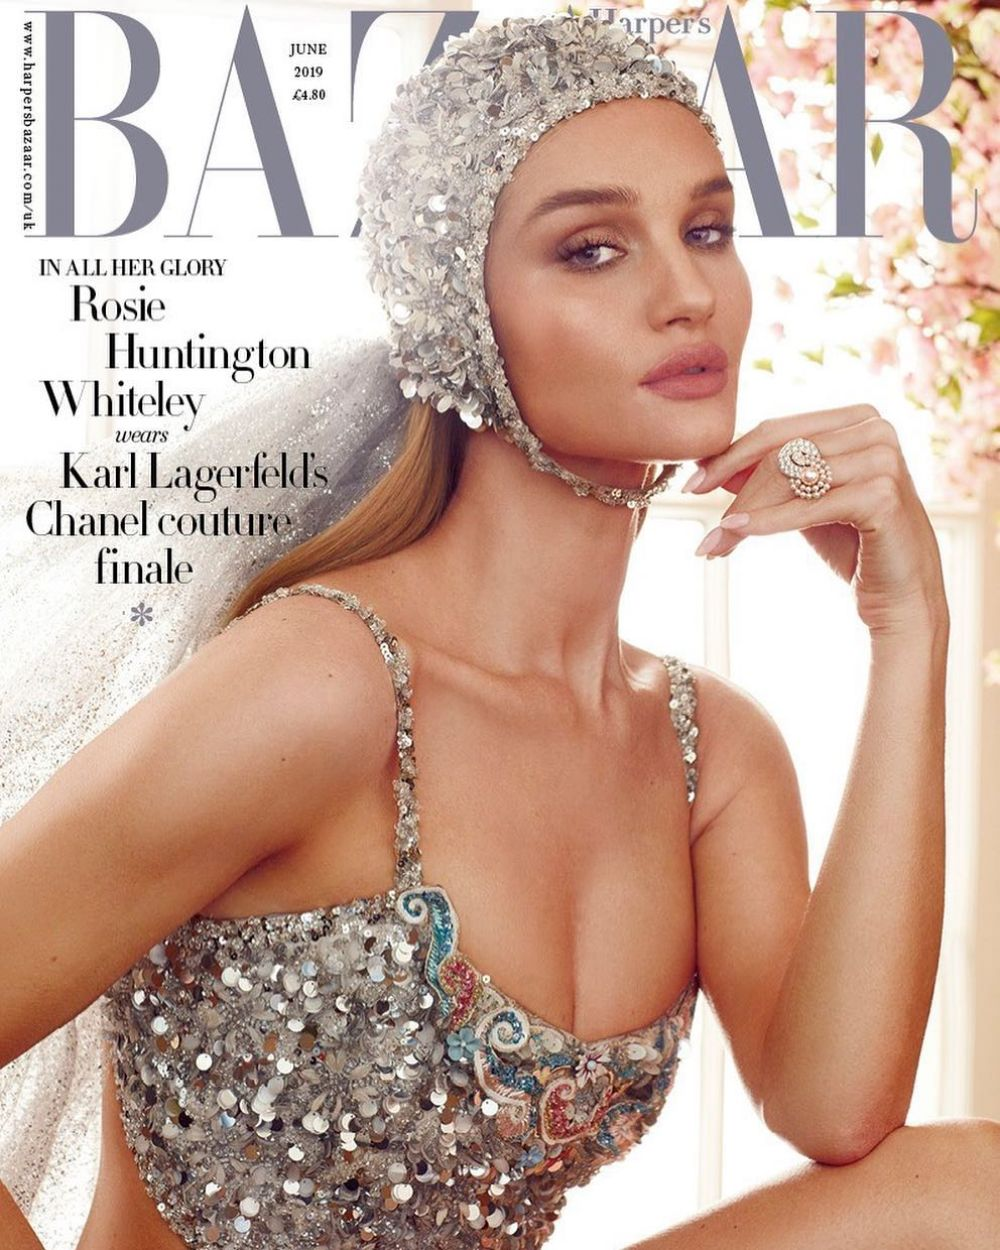 Rosie Huntington-WhiteleyBritish Harper's Bazaar Cover June 2019